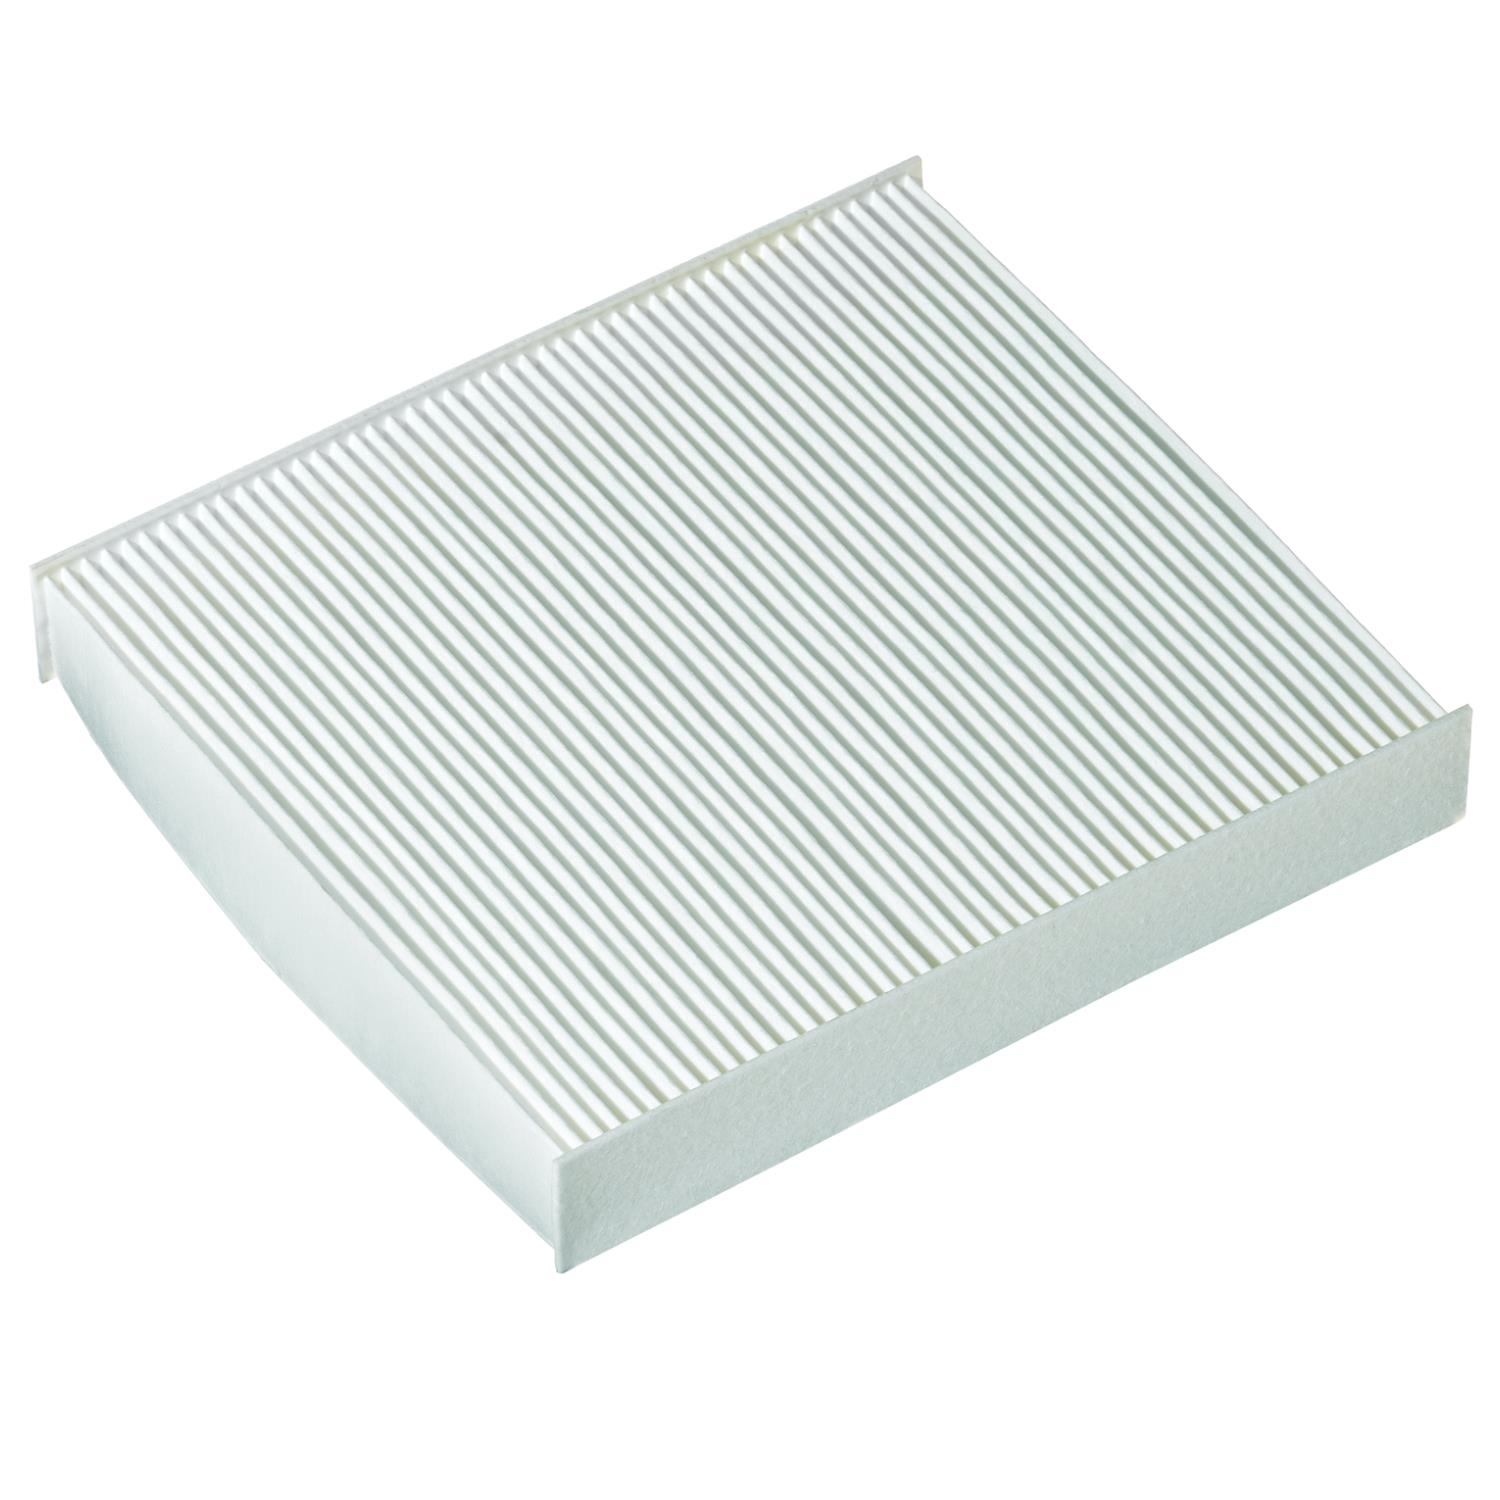 Atp Automotive Cf 82 Replacement Cabin Filter